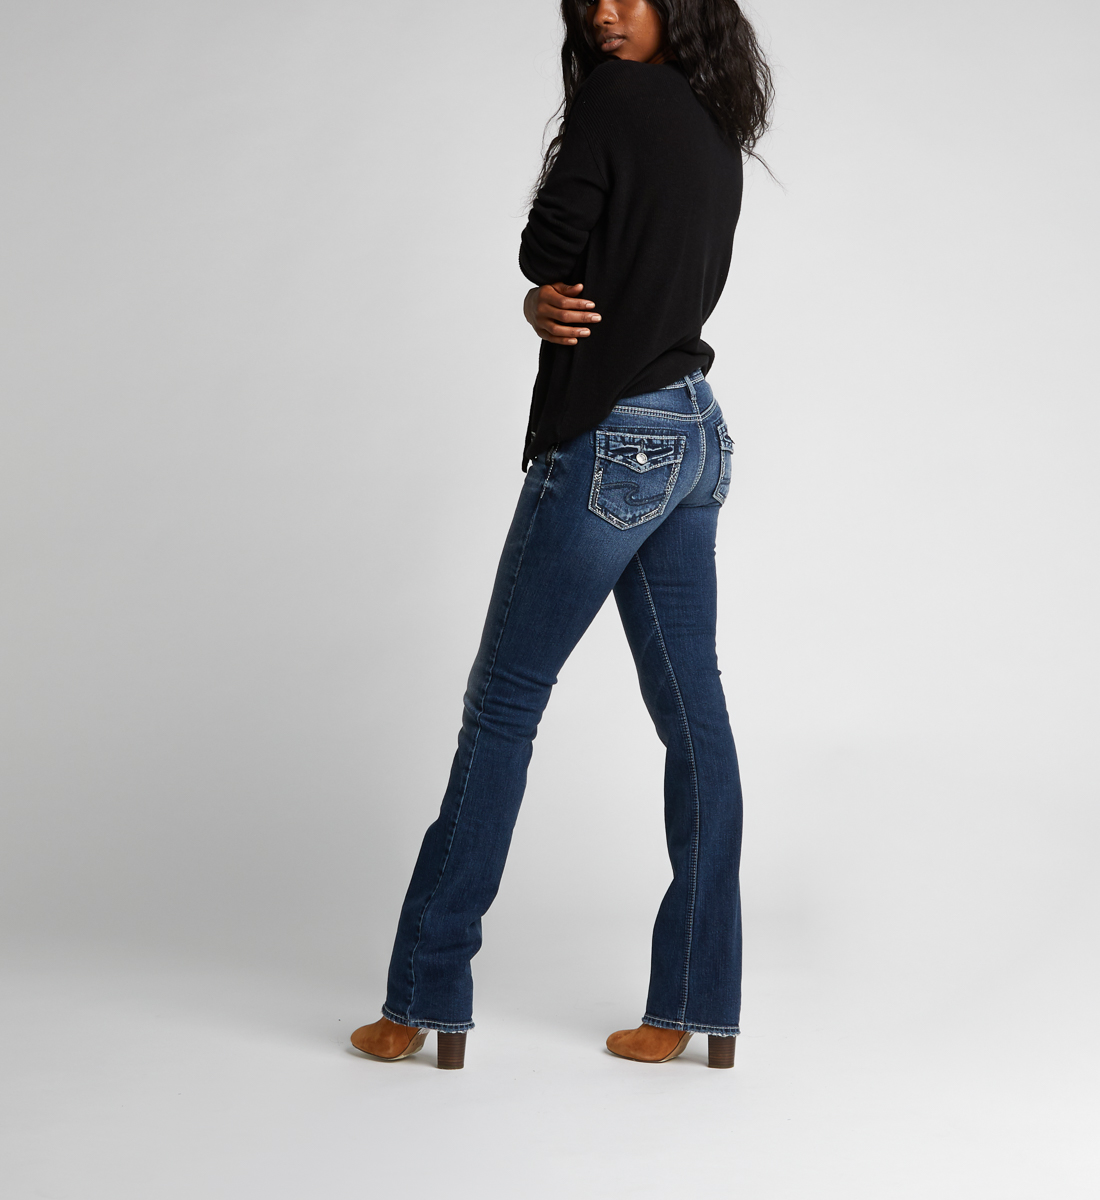 Silver Jeans Co Womens Suki Slim Mid Rise Boot Cut Jeans